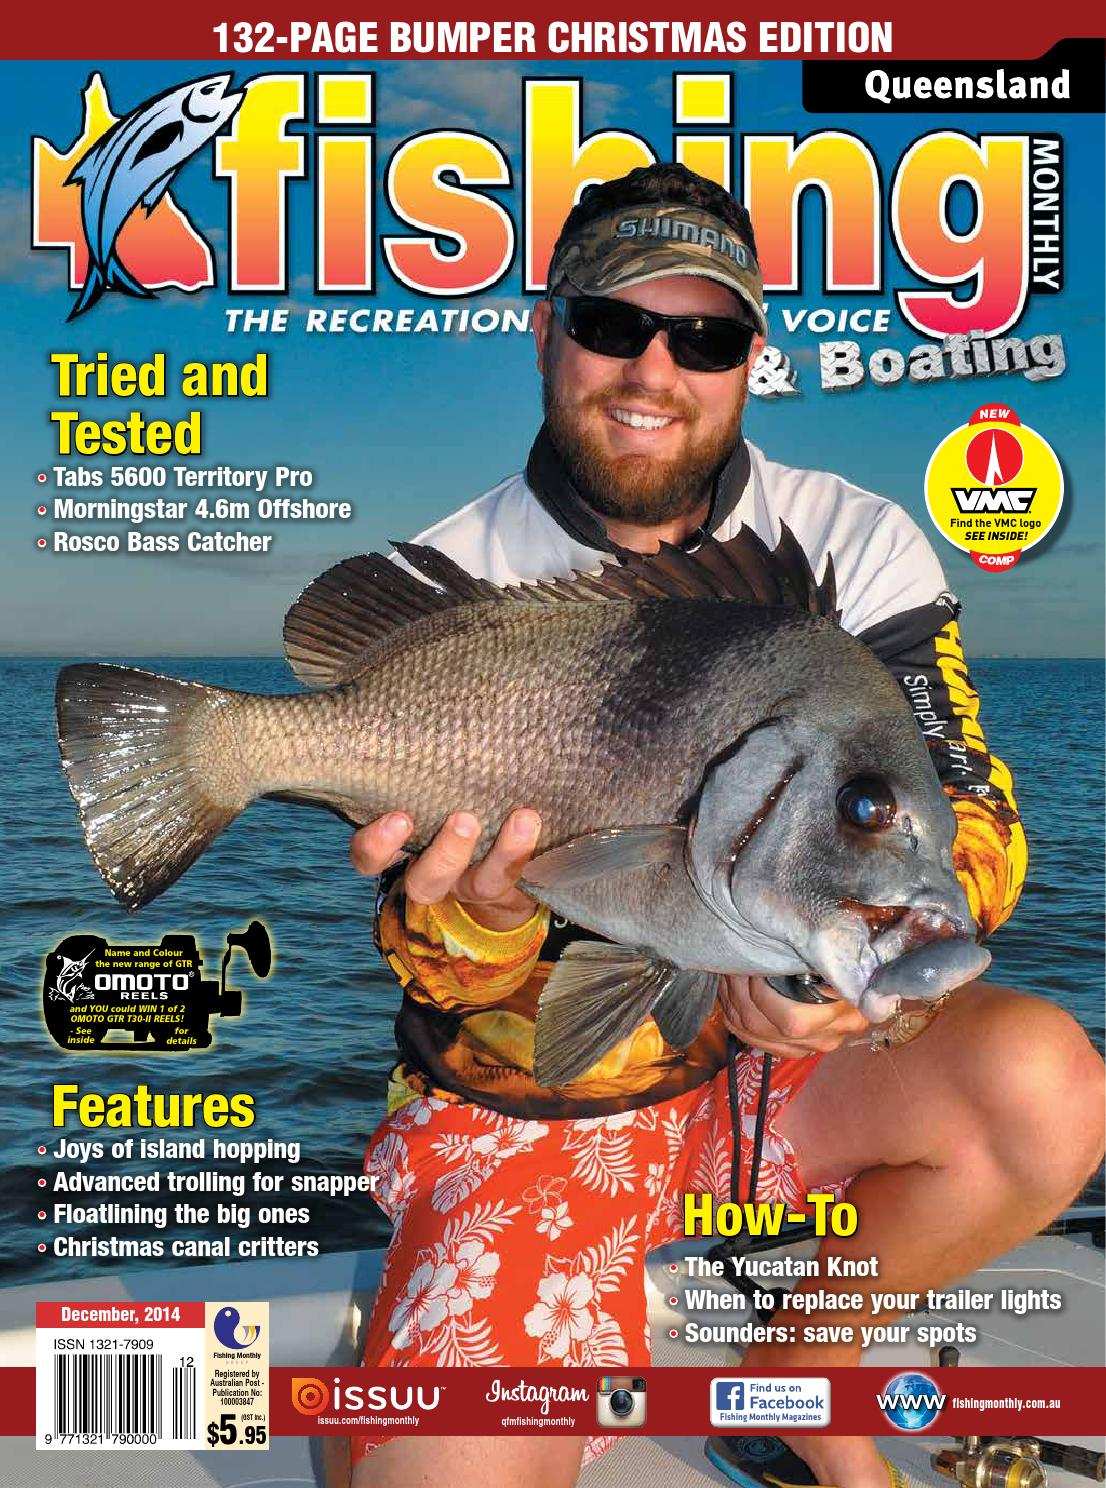 Queensland Fishing Monthly - December 2014 by Fishing